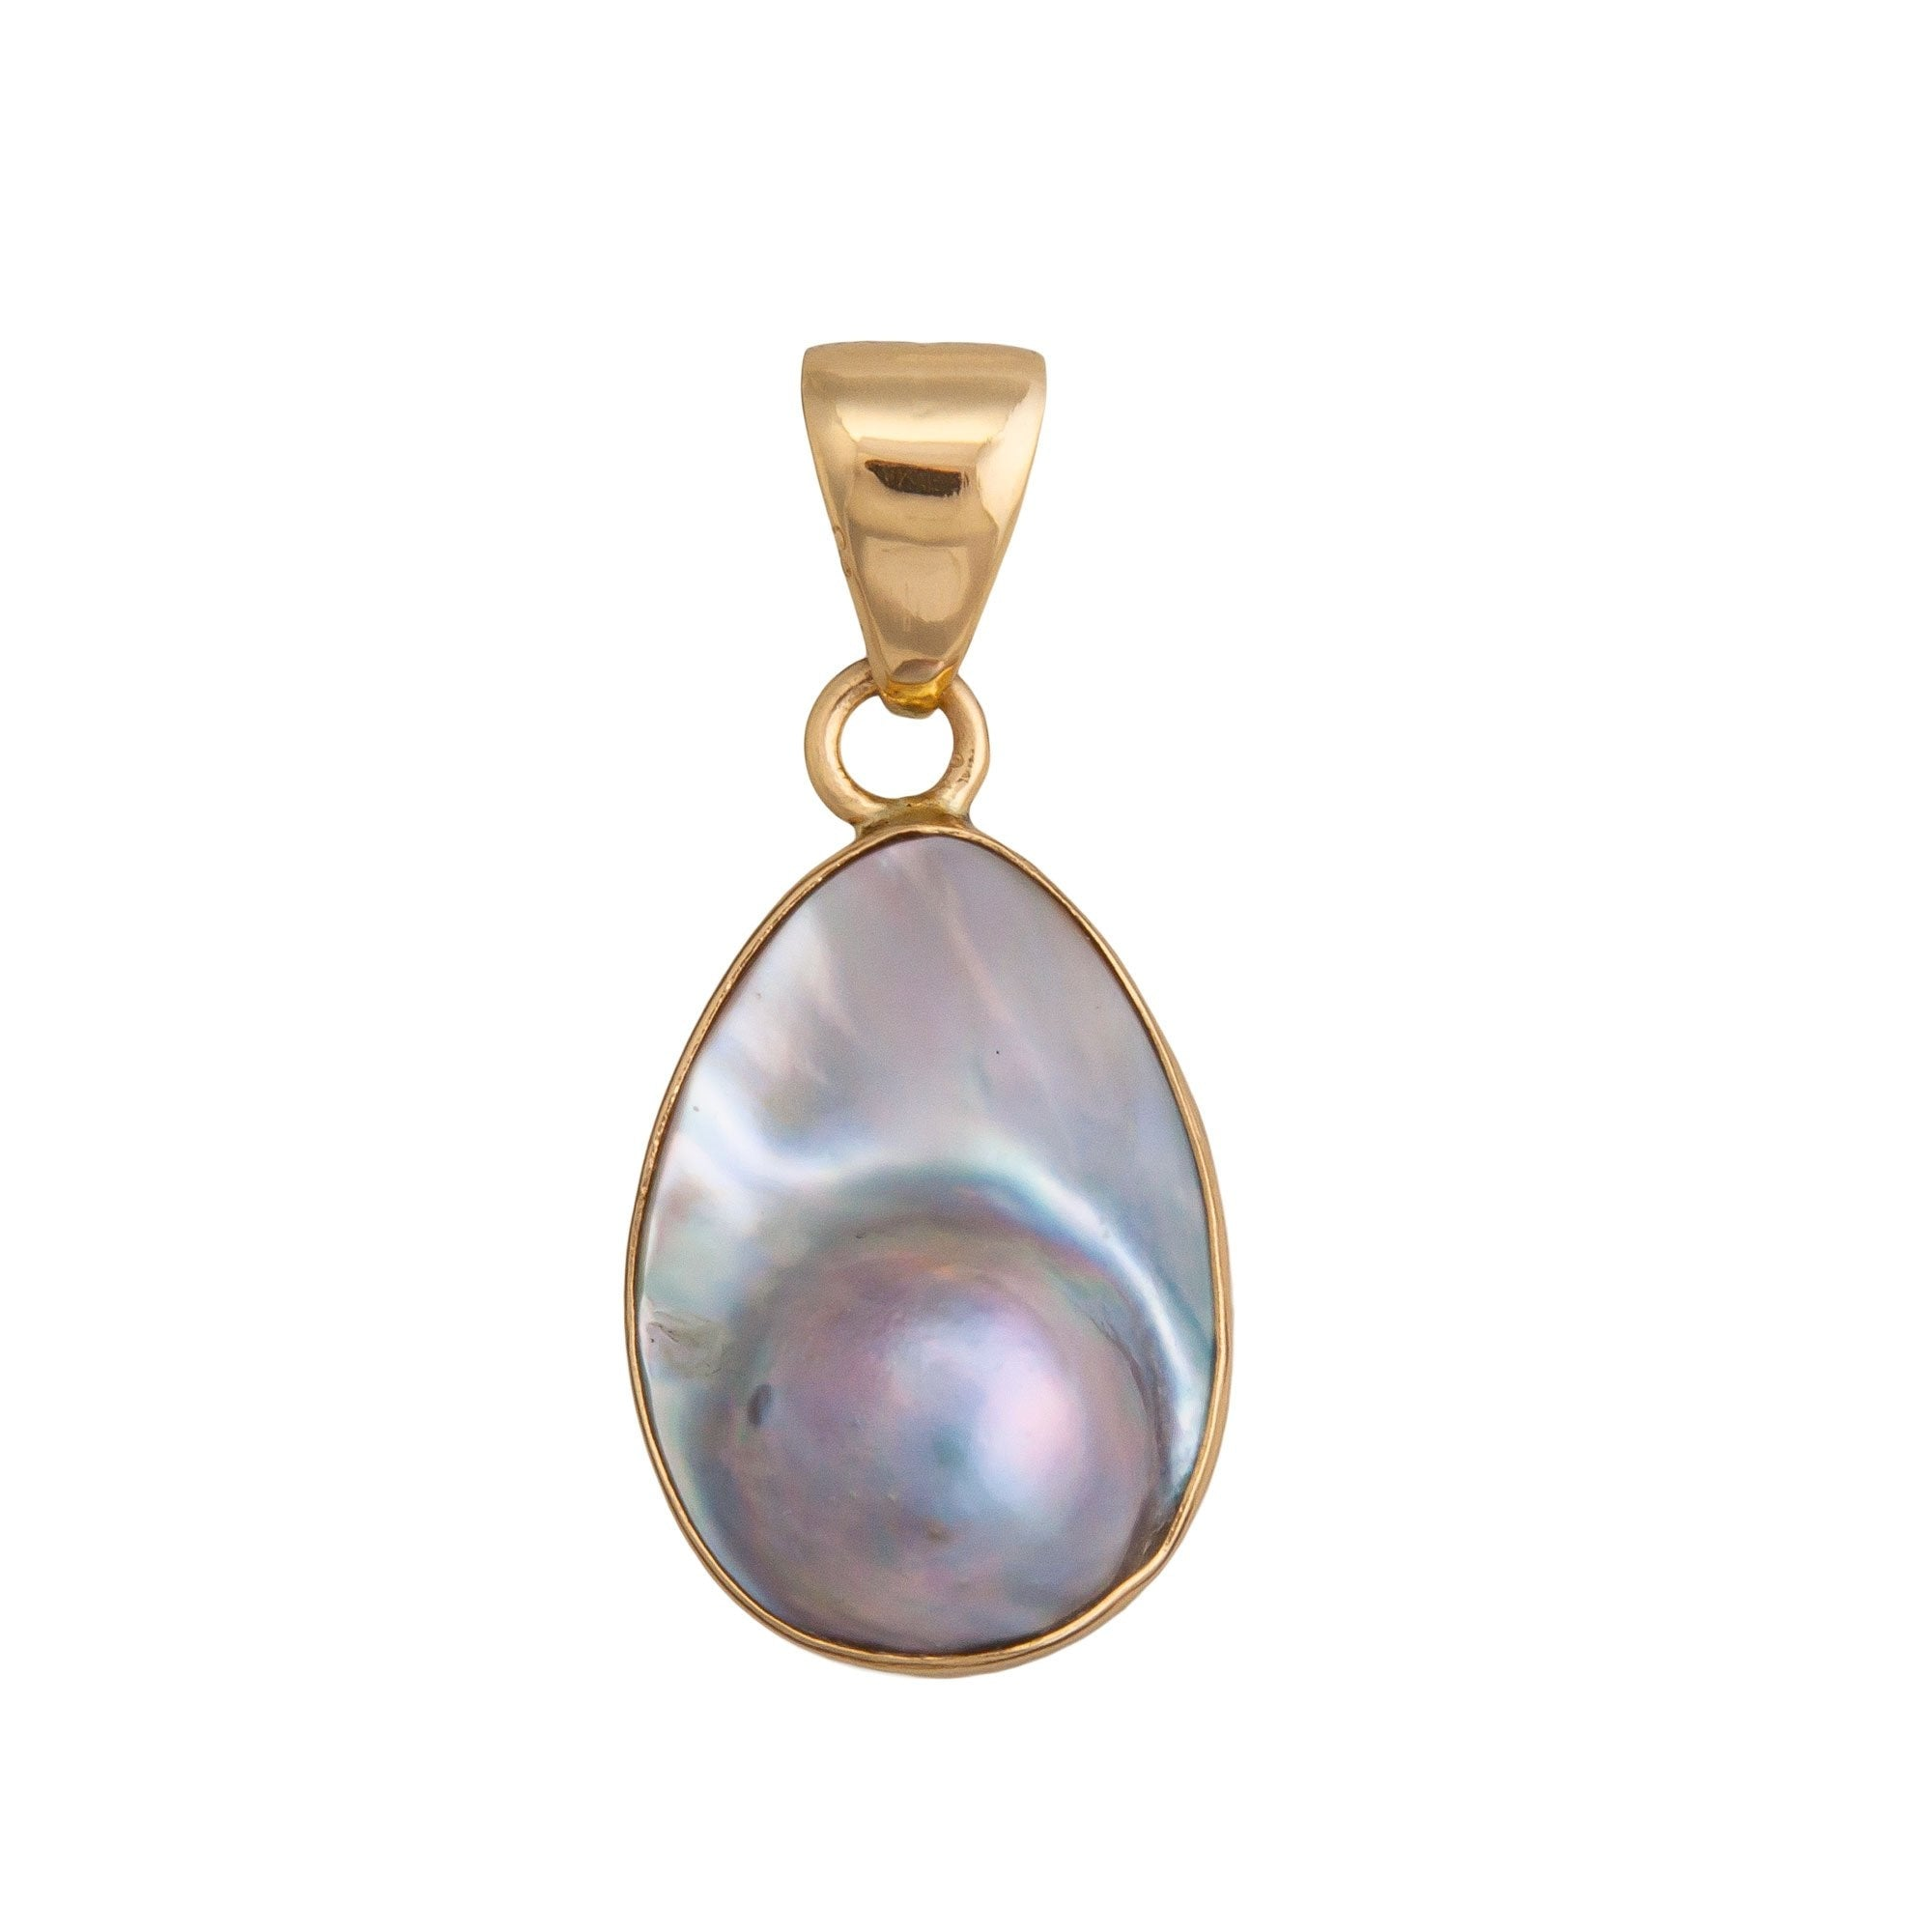 Alchemia Mabe Blister Pearl Pendant